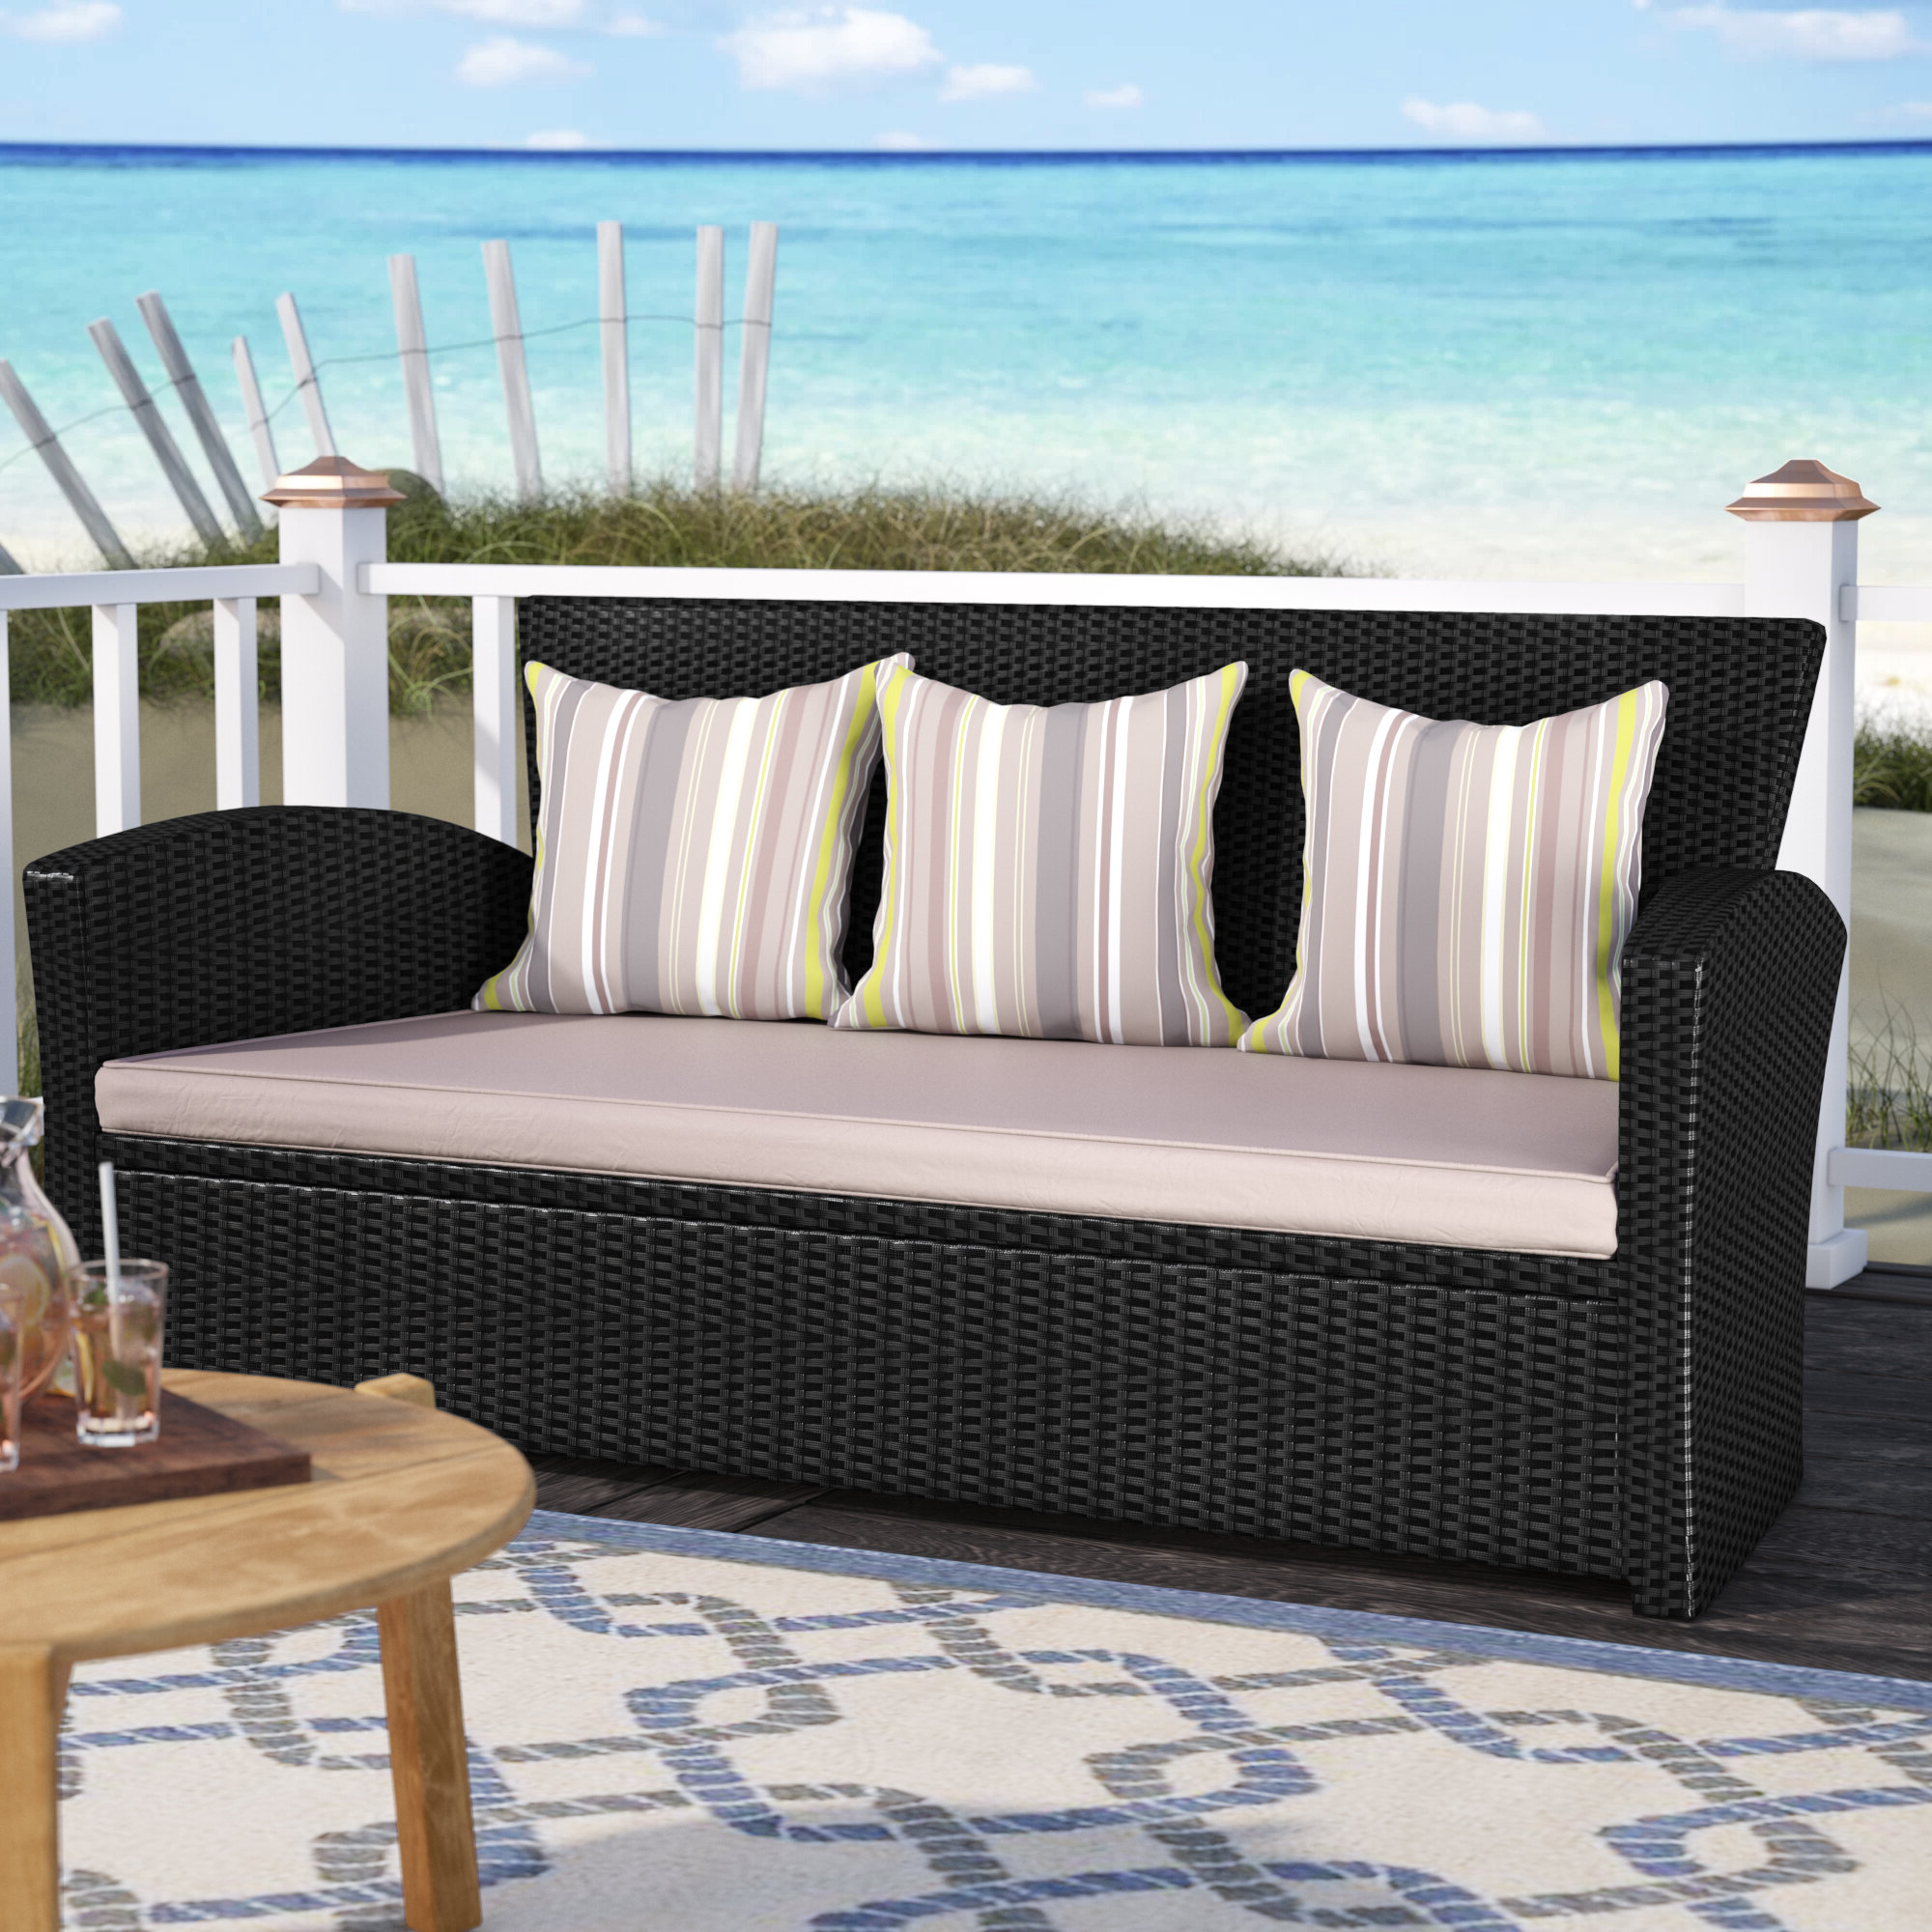 Valetta Patio Sofa With Cushions Throughout Most Recently Released Loggins Patio Sofas With Cushions (View 20 of 20)